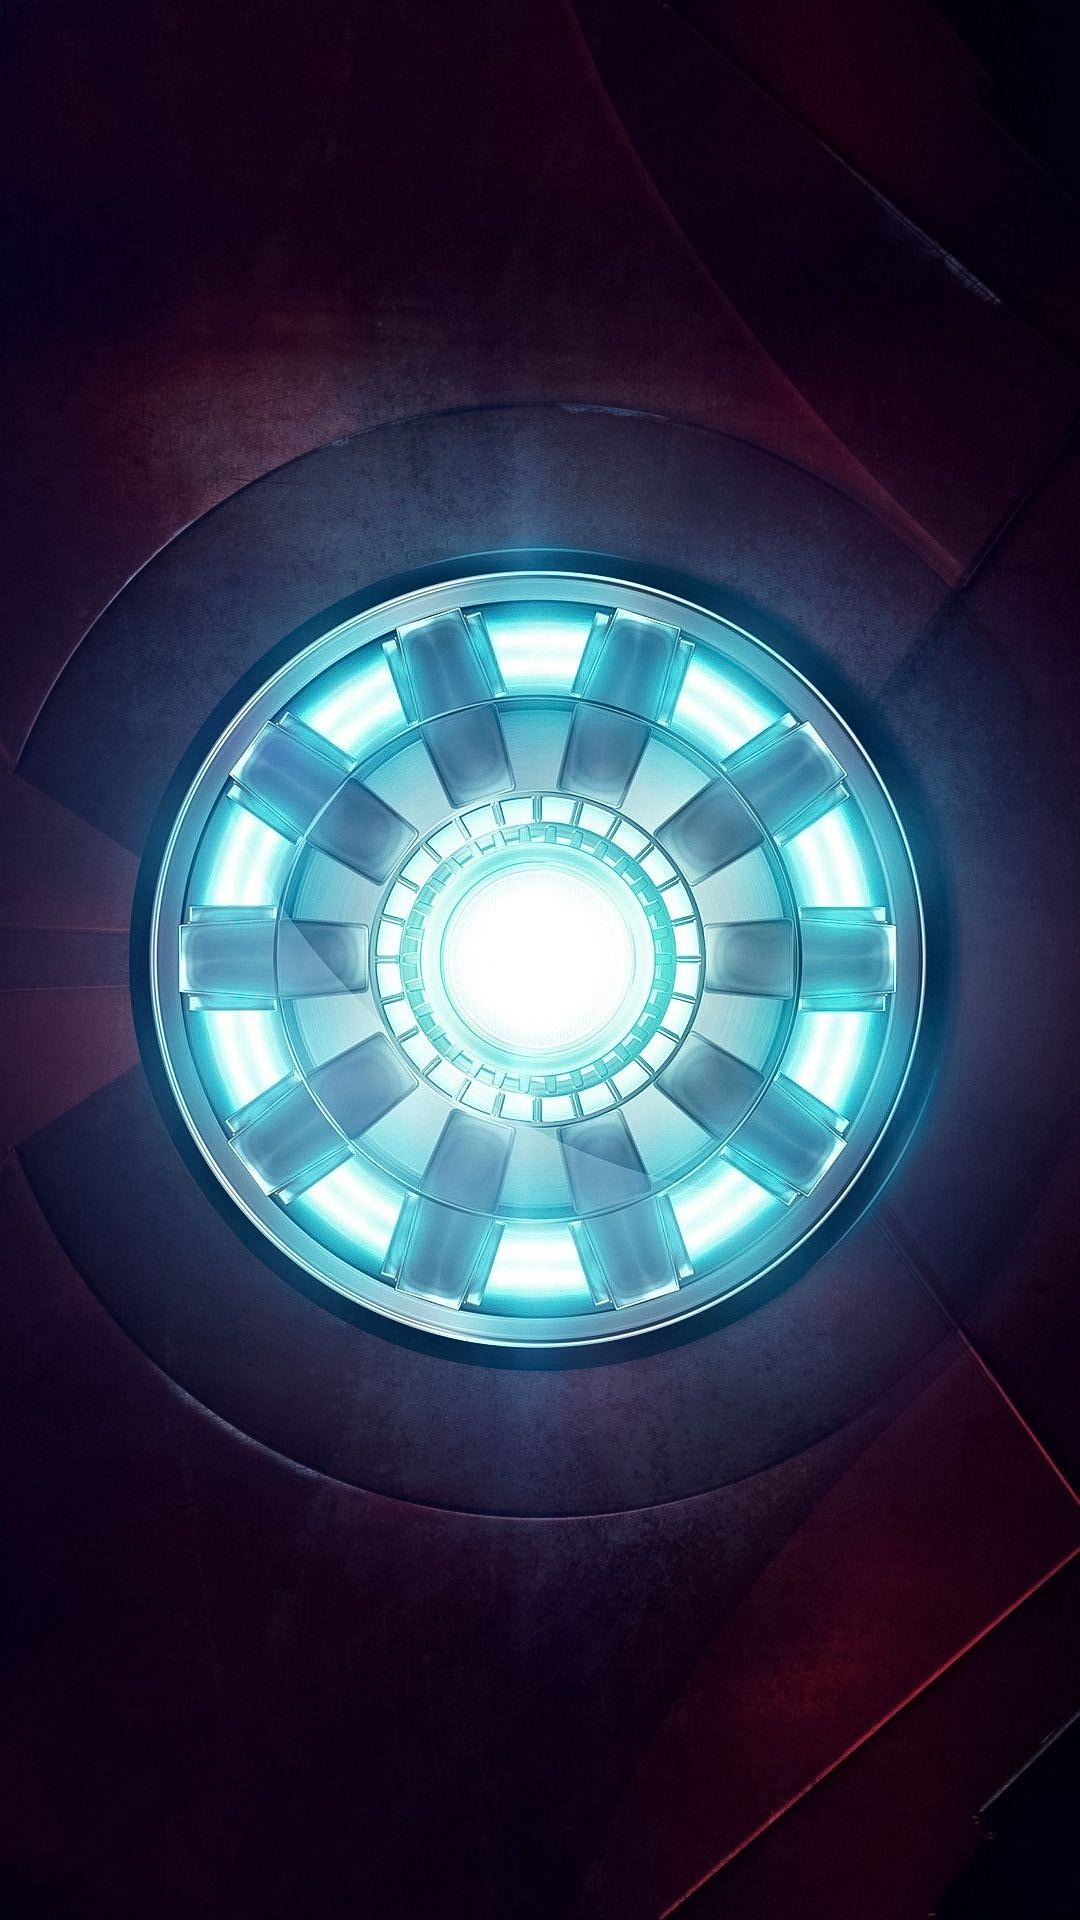 Iron Man Arc Reactor Wallpaper Lah Pinterest Marvel Circuit Superhros Comics Logostore